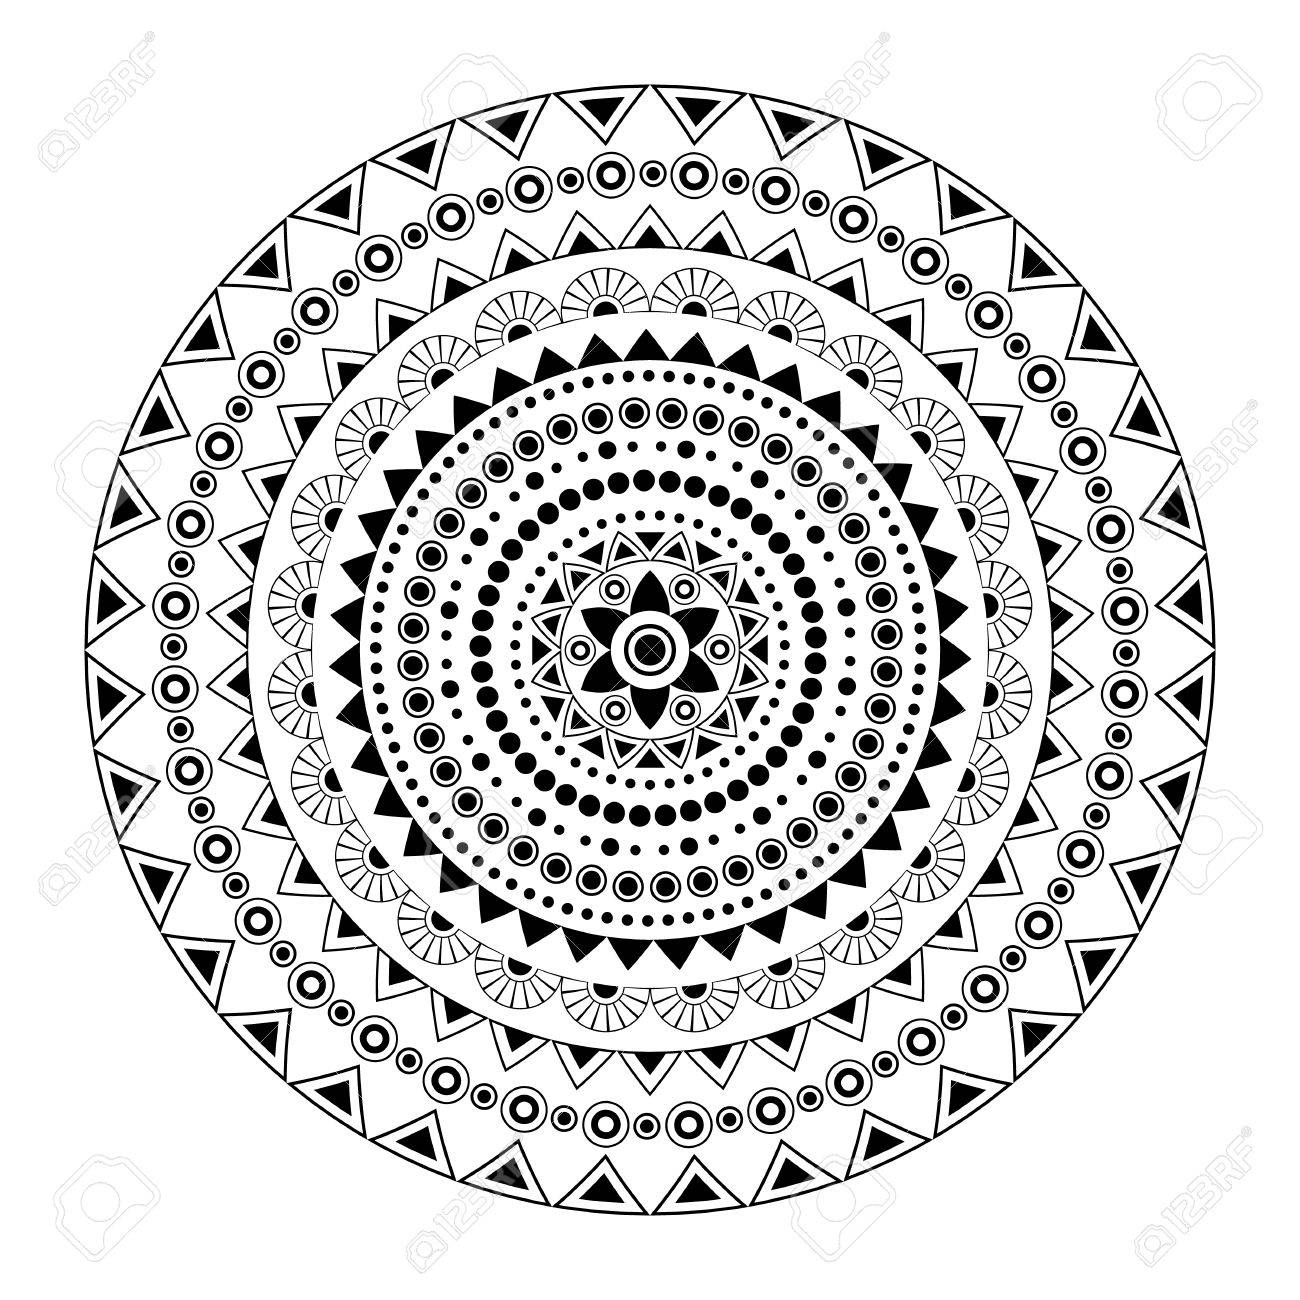 Black And White Mandala Print Template Adult Coloring Book Page Abstract Pattern Stock